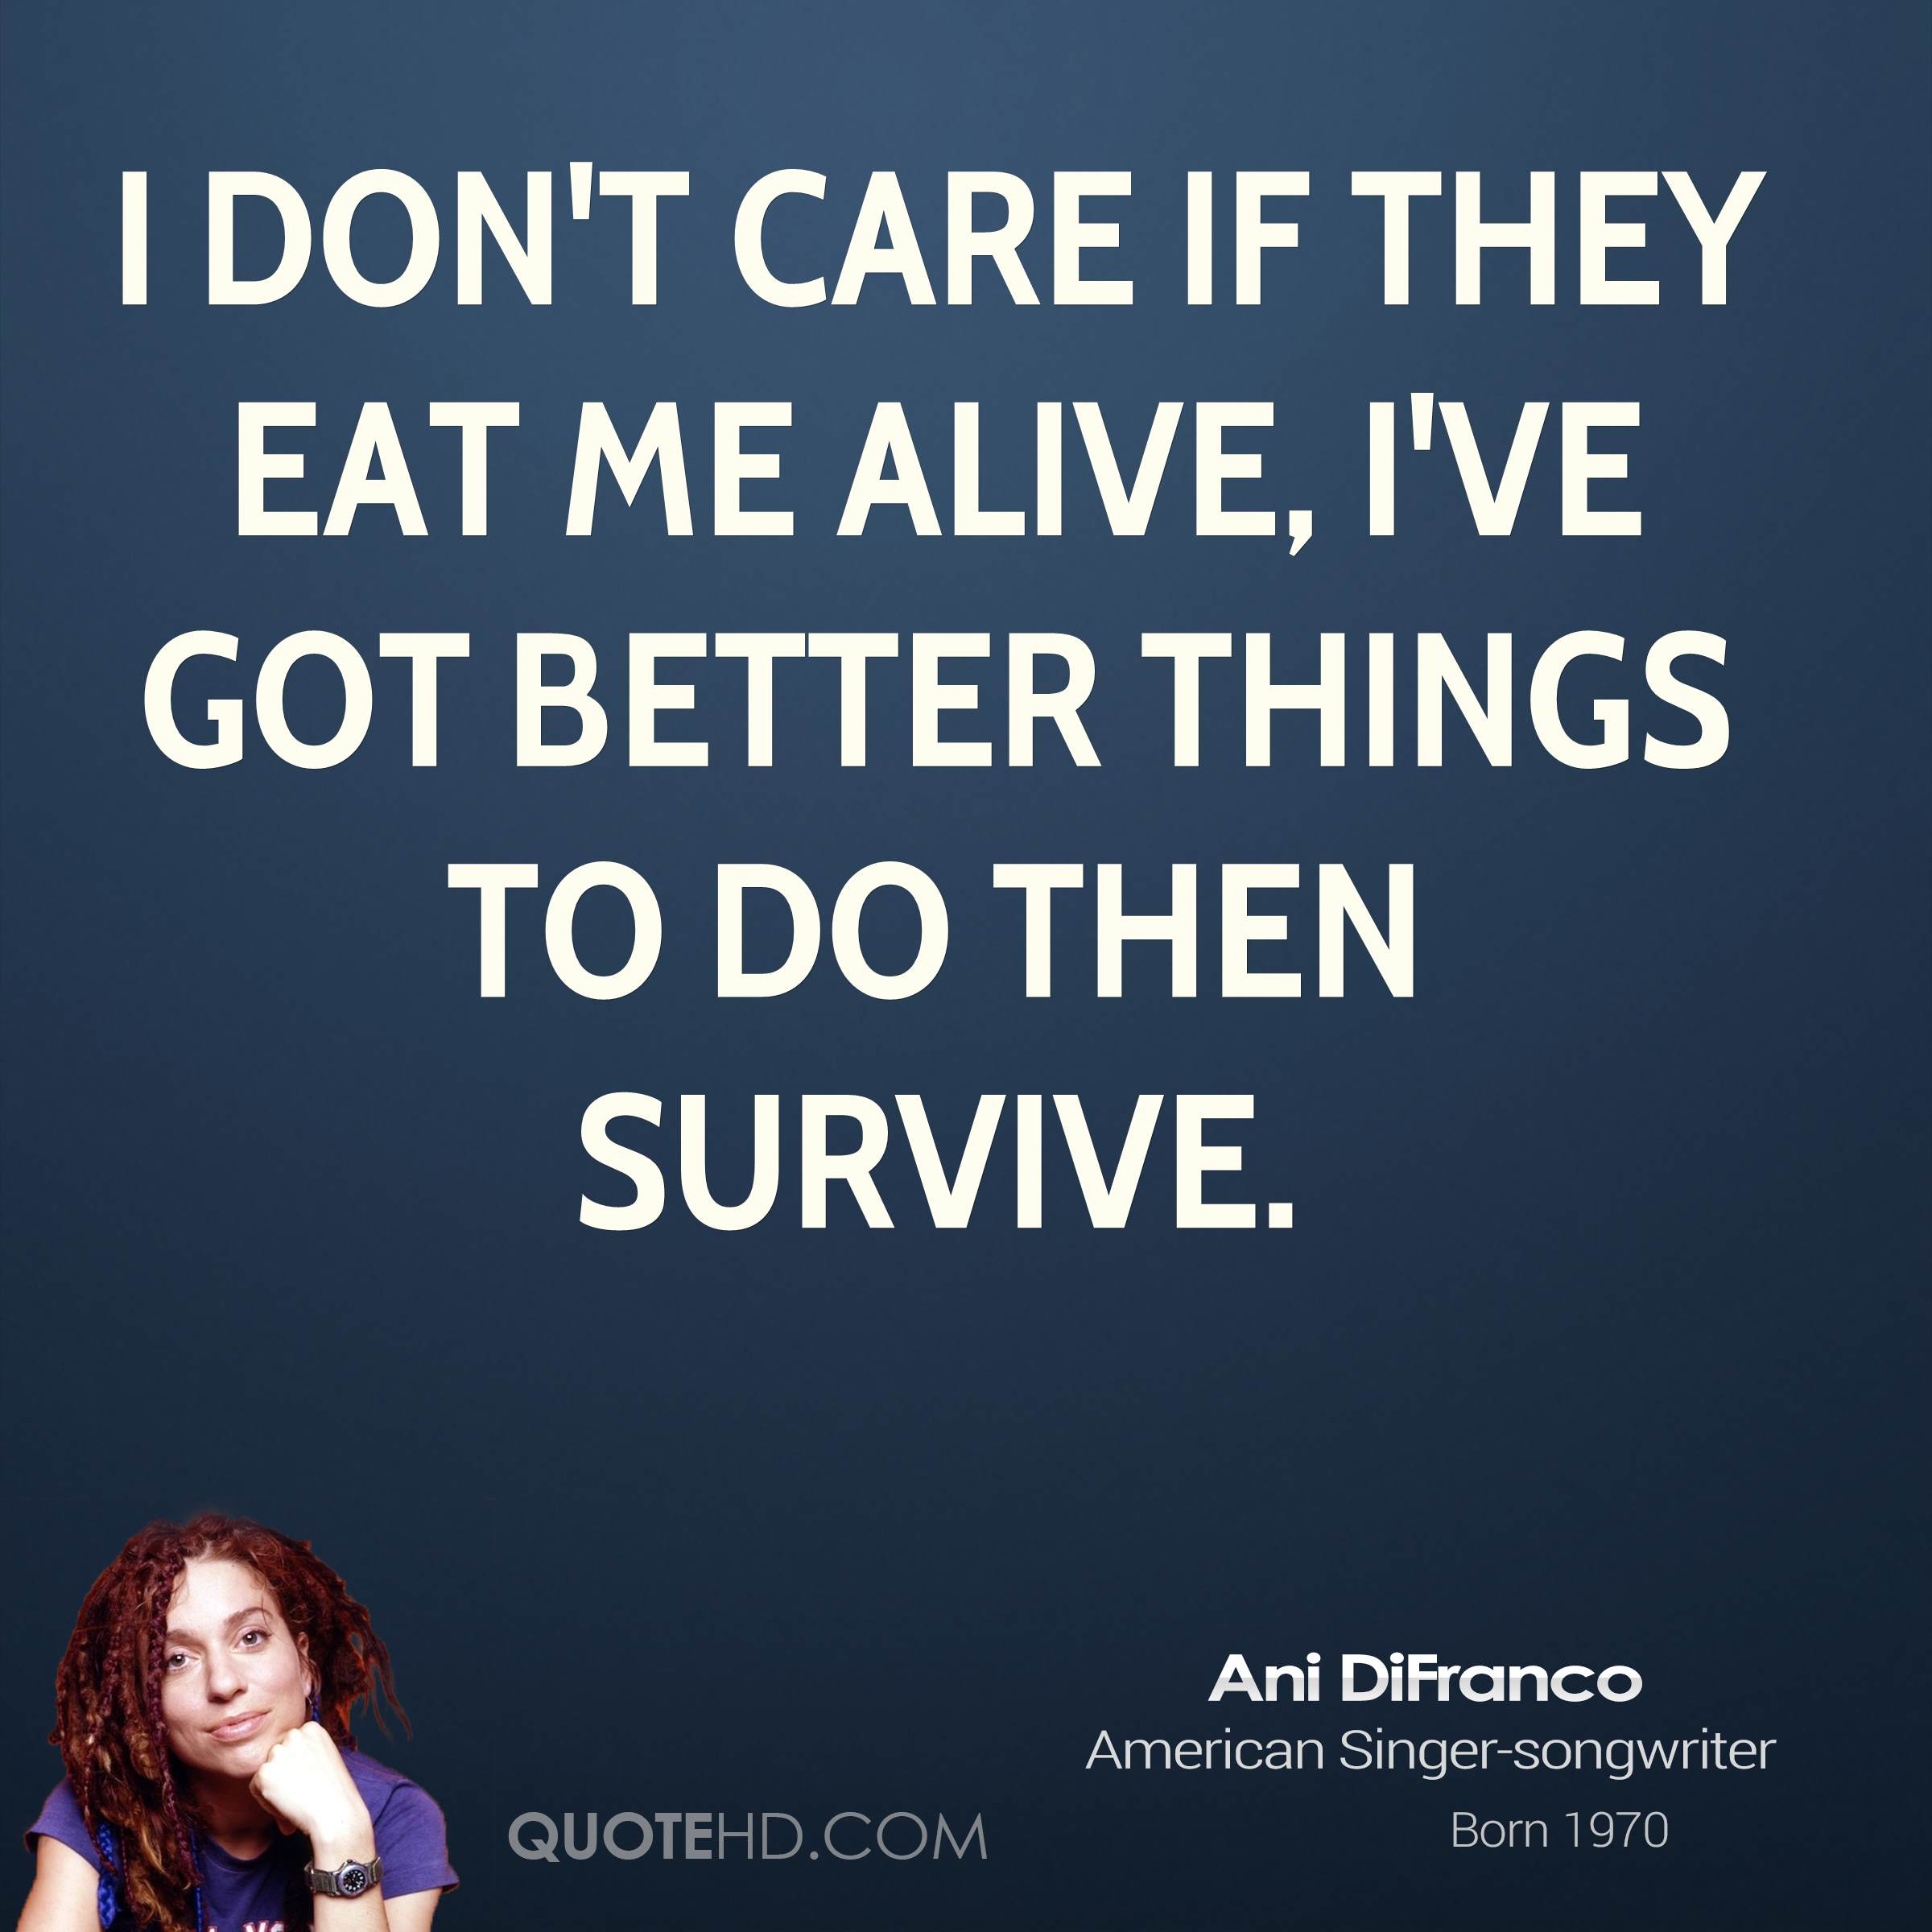 I don't care if they eat me alive, I've got better things to do then survive.